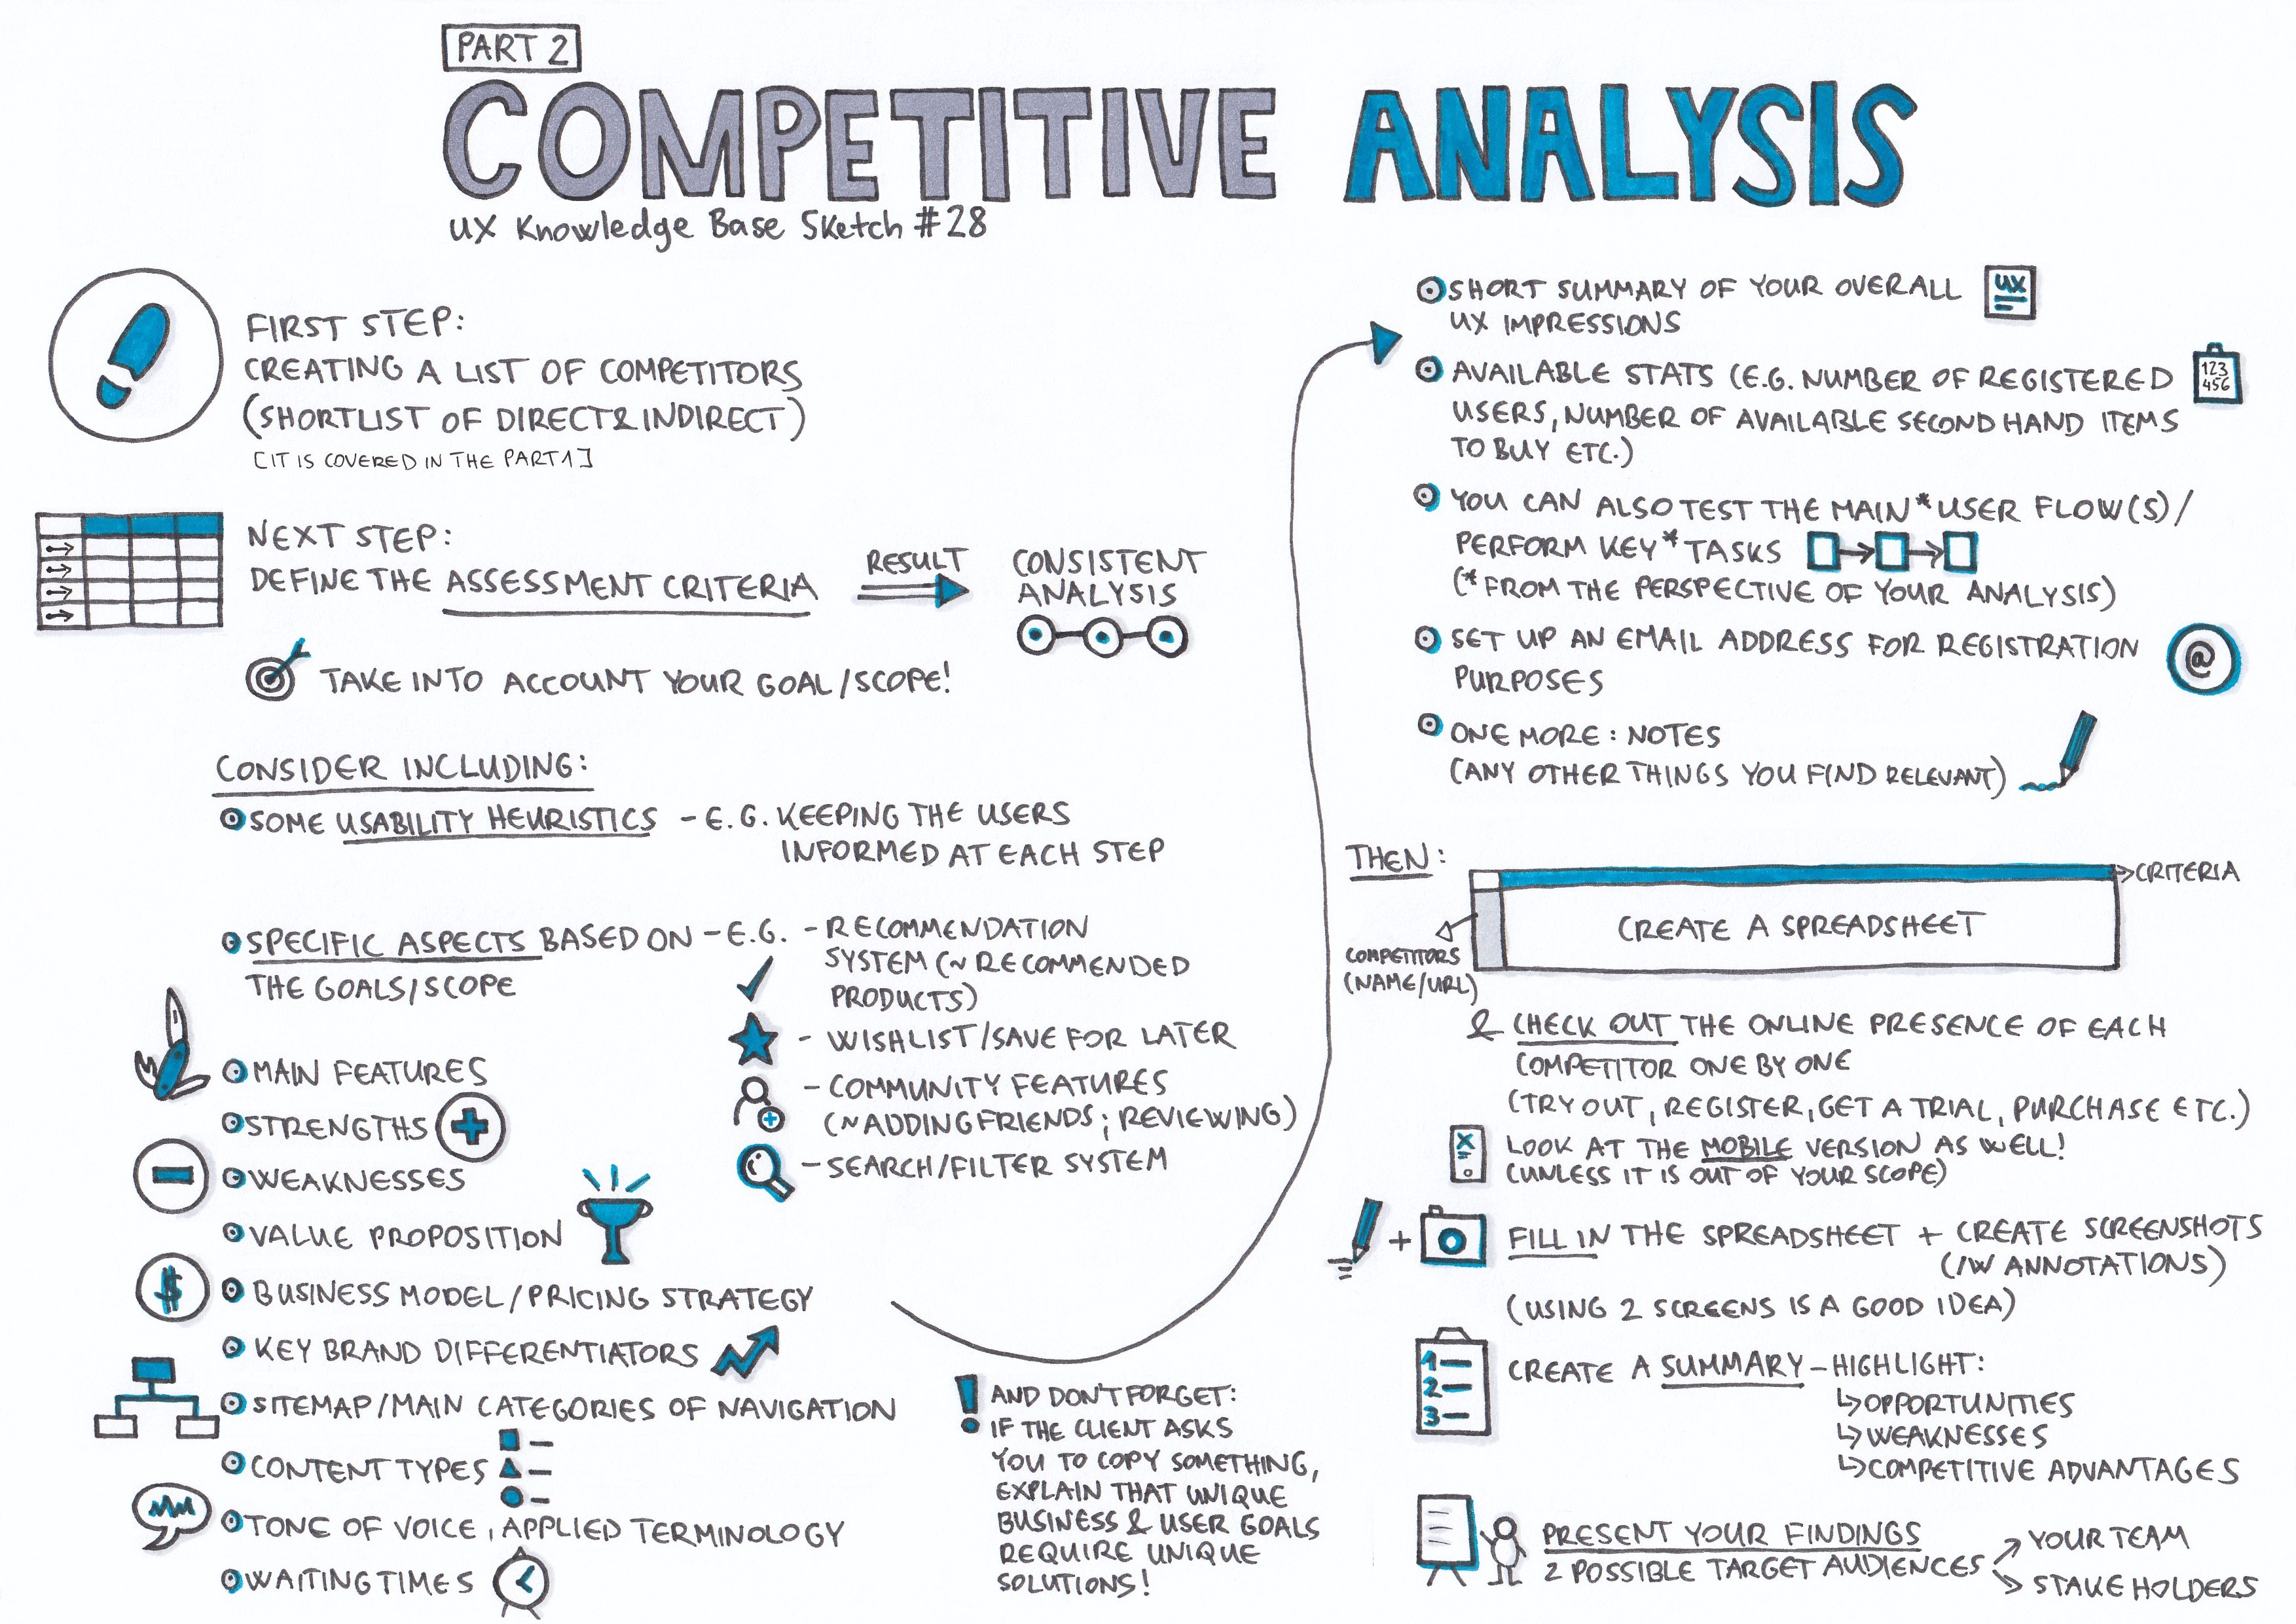 competitive analysis  u2014 part 2  ux knowledge base sketch